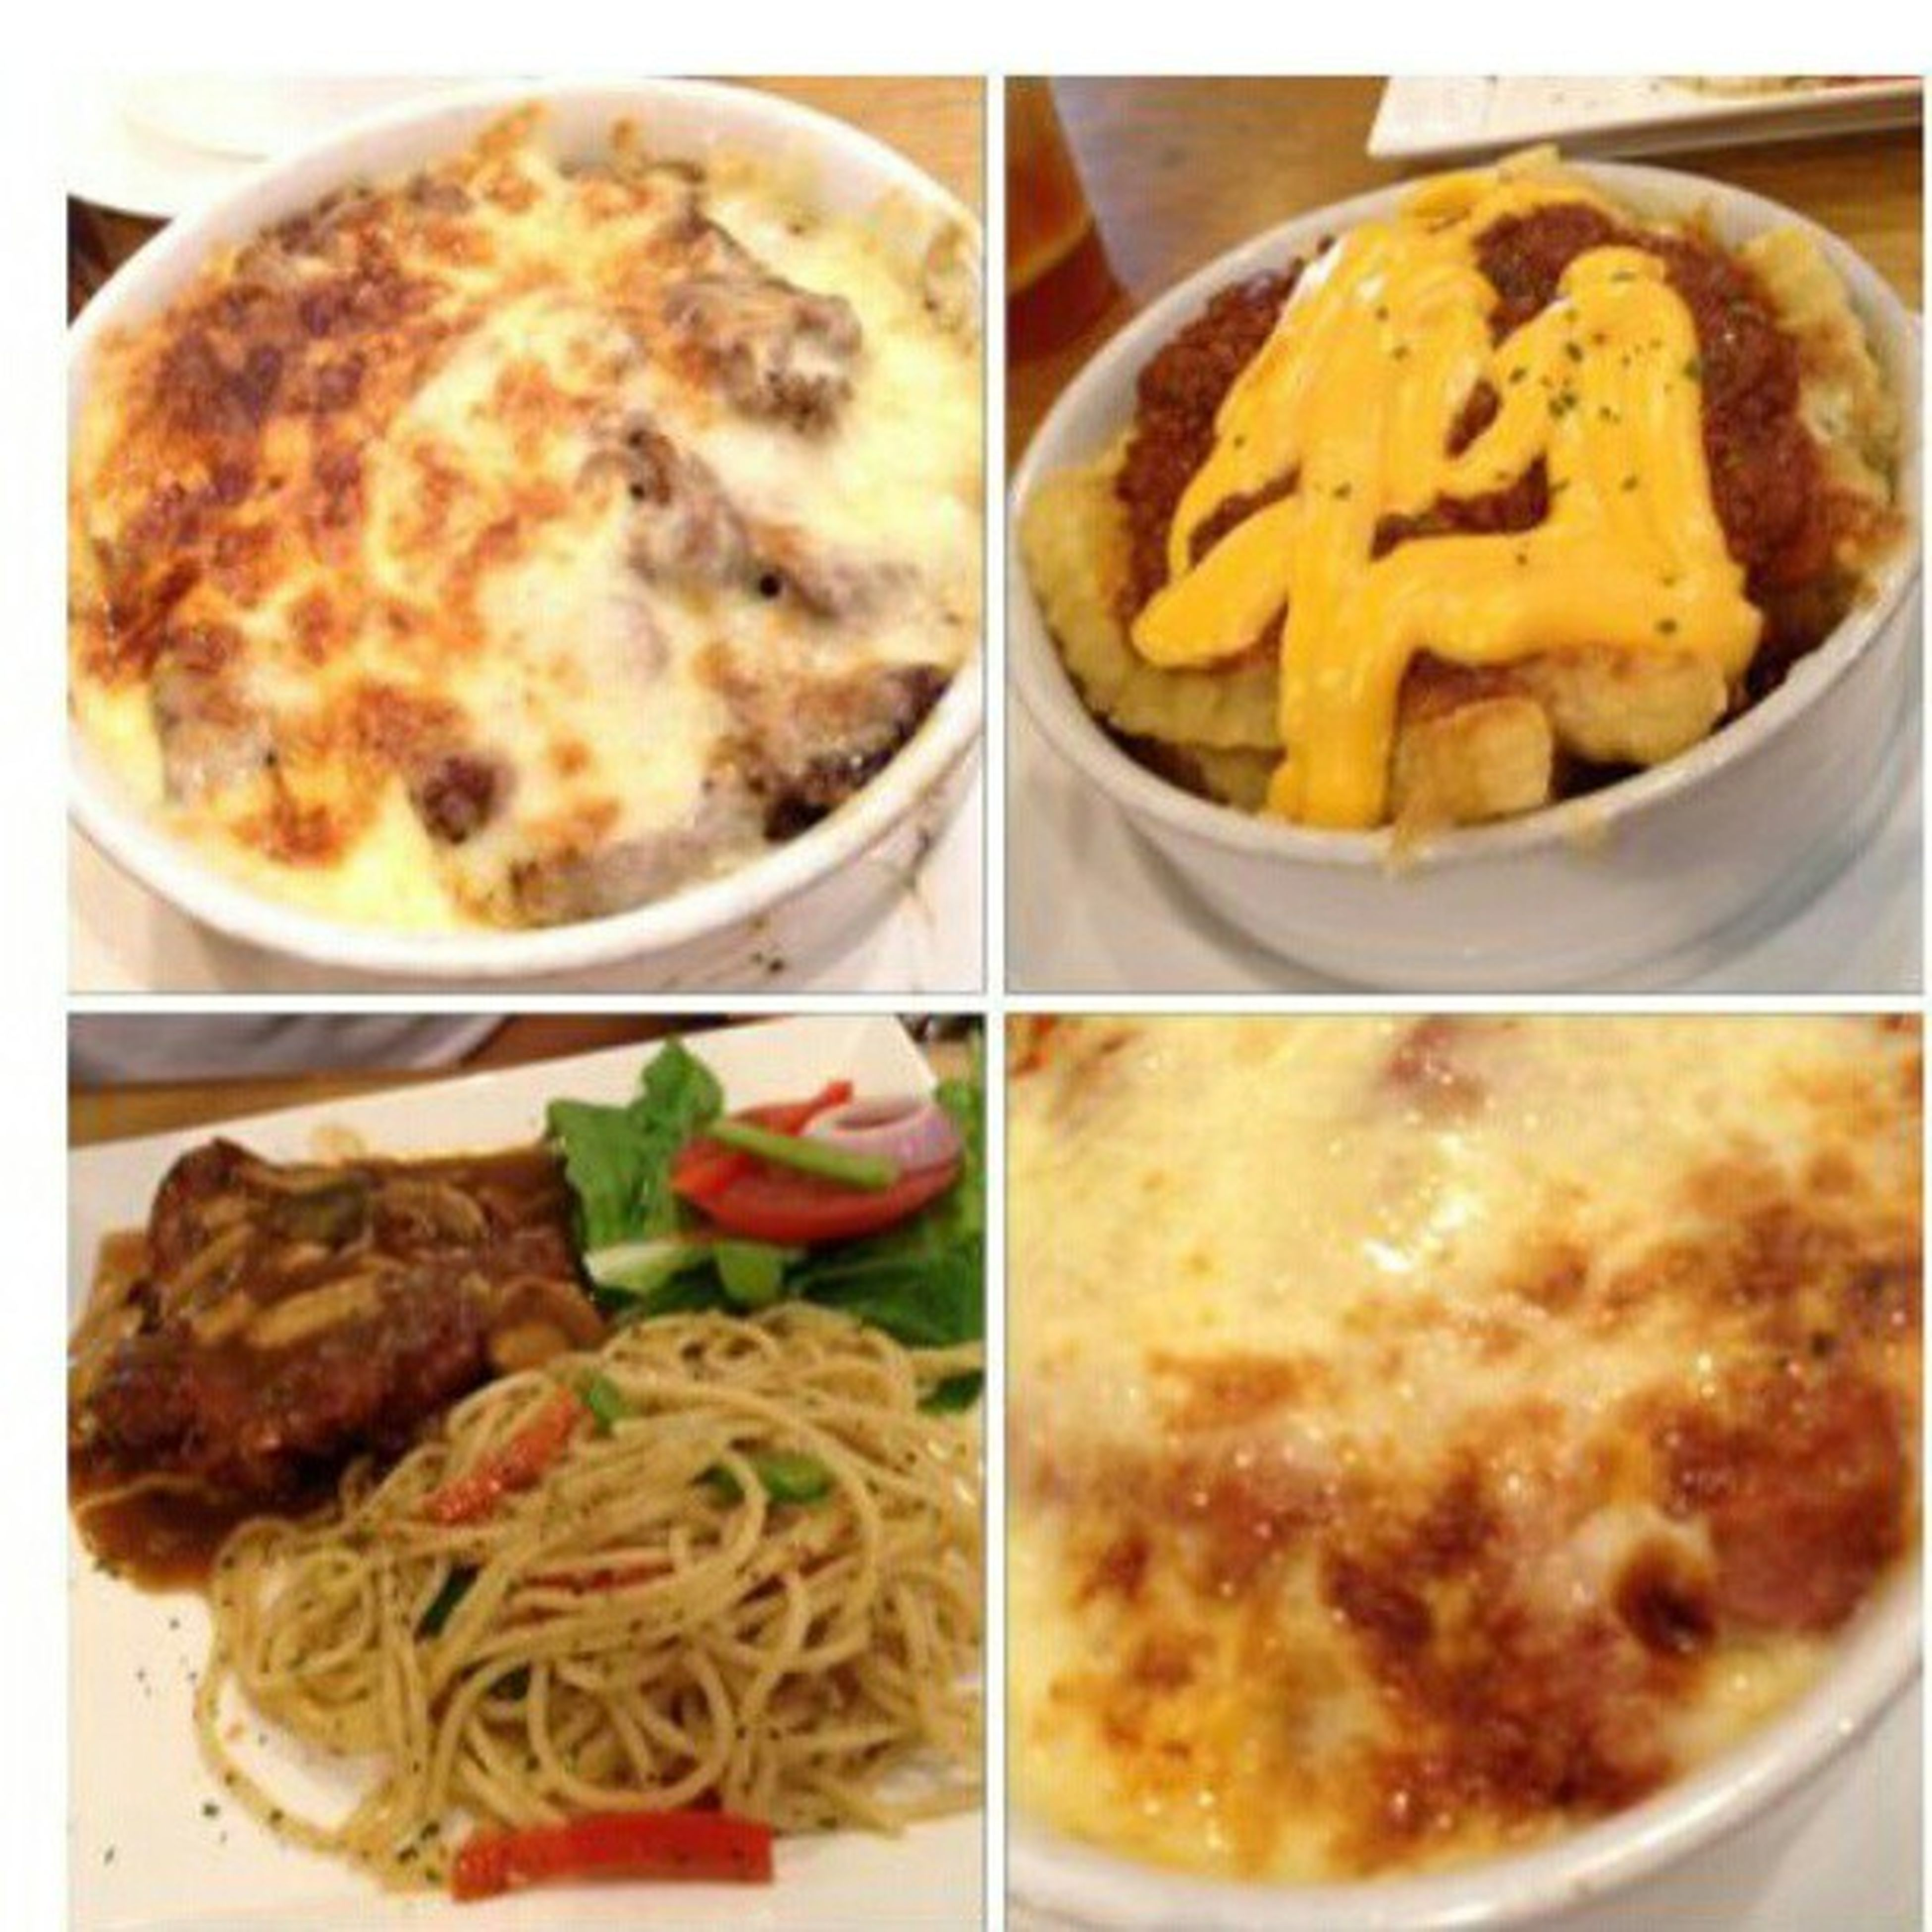 Dinner 18chefs Bakedrice Cheese pasta chickenchop fries bolognese foodies @kelvjiawei @lavinz